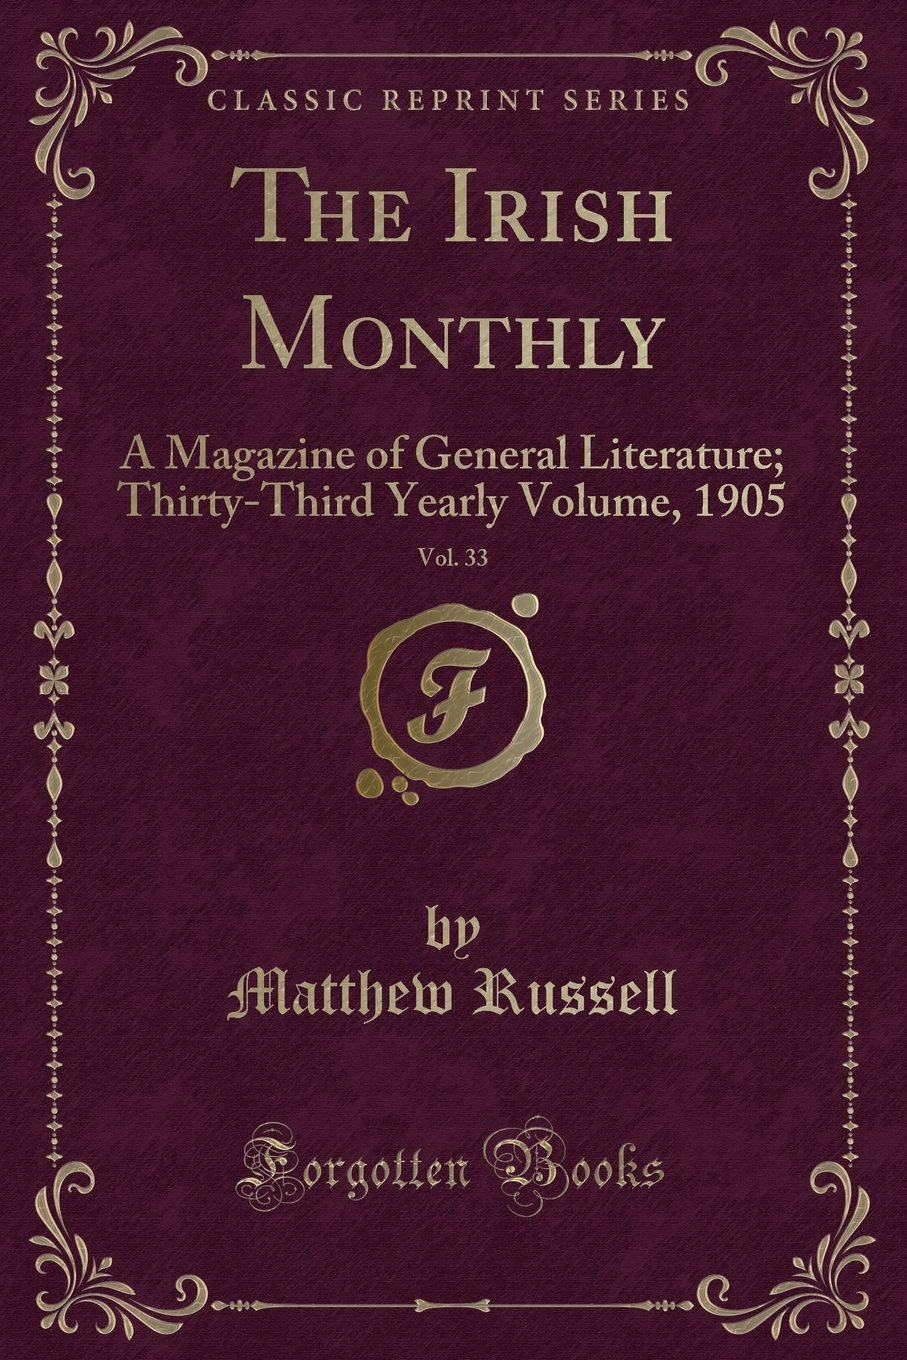 The Irish Monthly, Vol. 33: A Magazine of General Literature; Thirty-Third Yearly Volume, 1905 (Classic Reprint) ebook